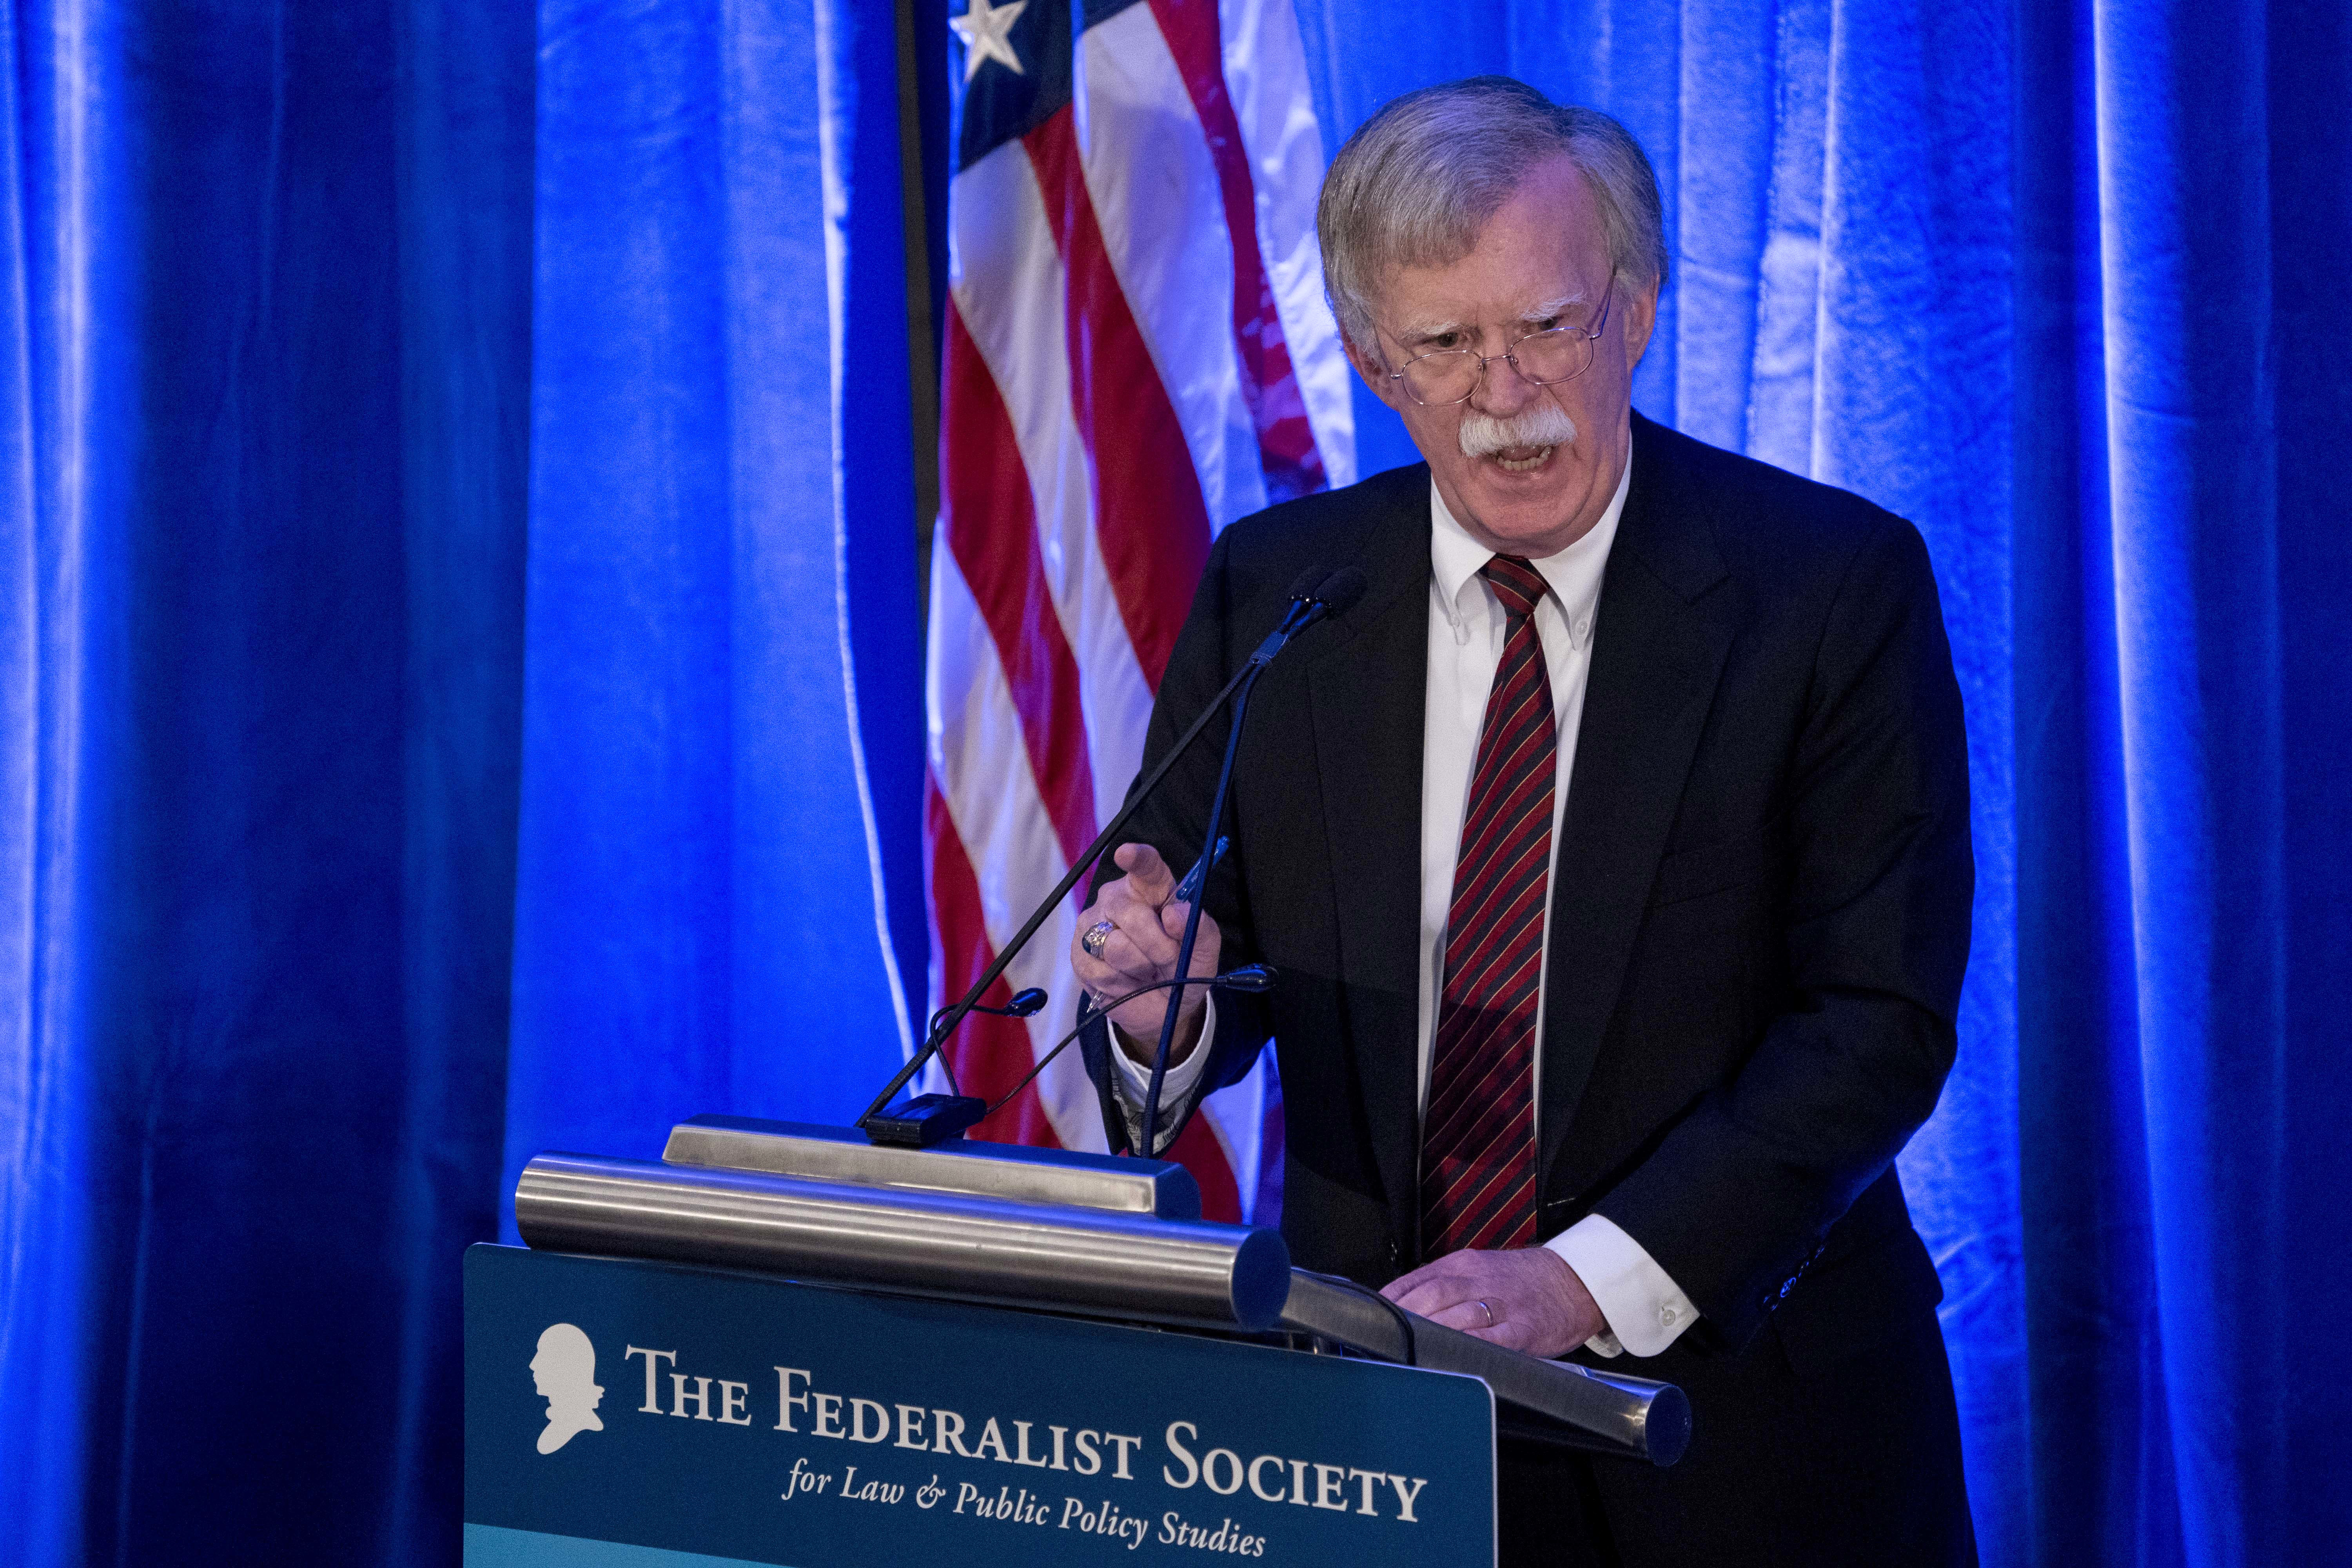 National security adviser John Bolton speaks at a Federalist Society luncheon at the Mayflower Hotel on Sept. 10, 2018, in Washington. (Andrew Harnik/AP)